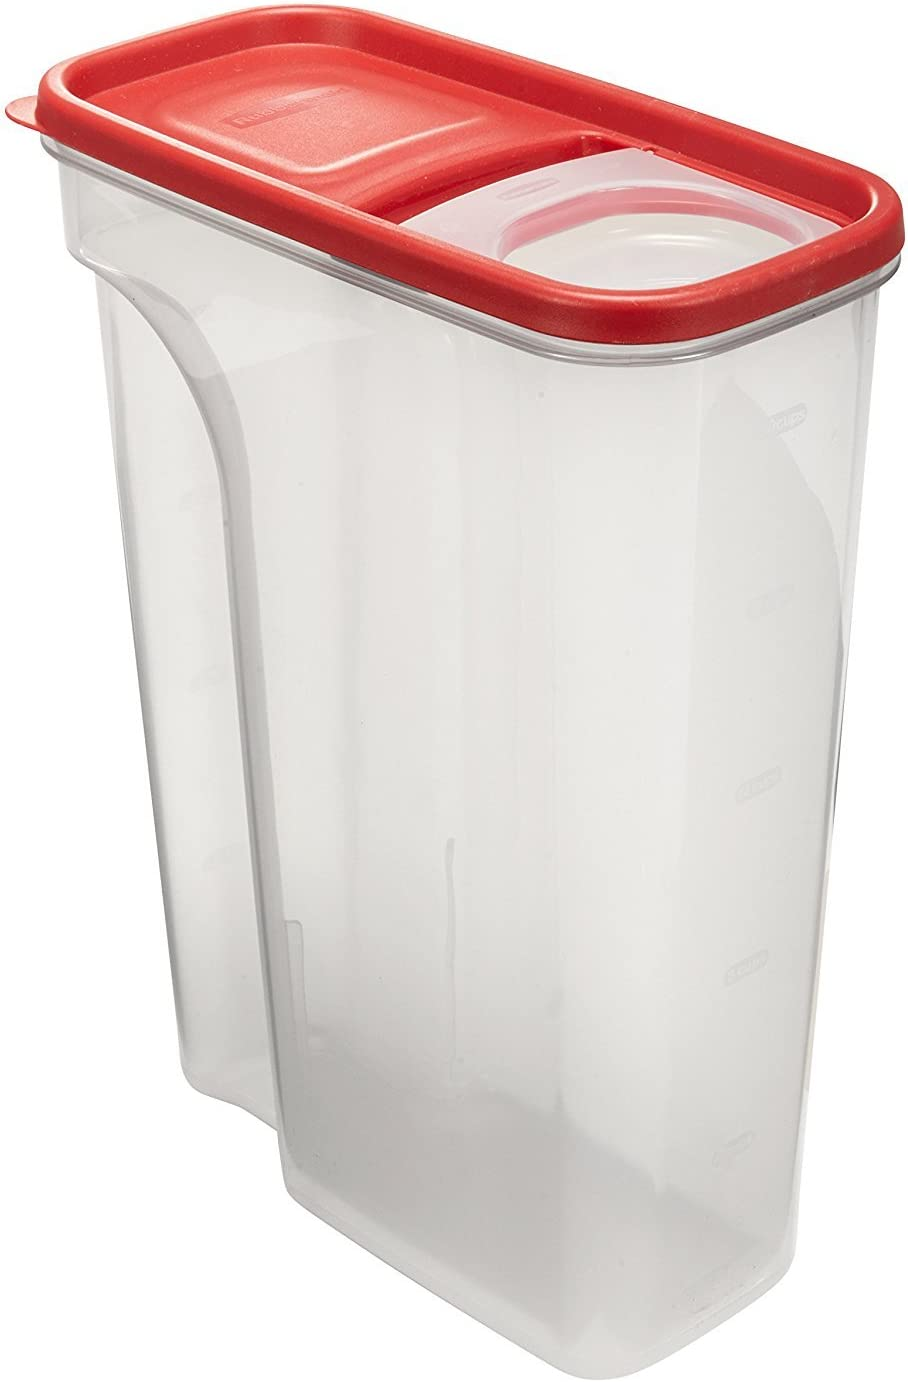 Rubbermaid Flip Top Cereal Keeper, Modular Food Storage Container, BPA-free, 22 Cup, Pack of 3, Red